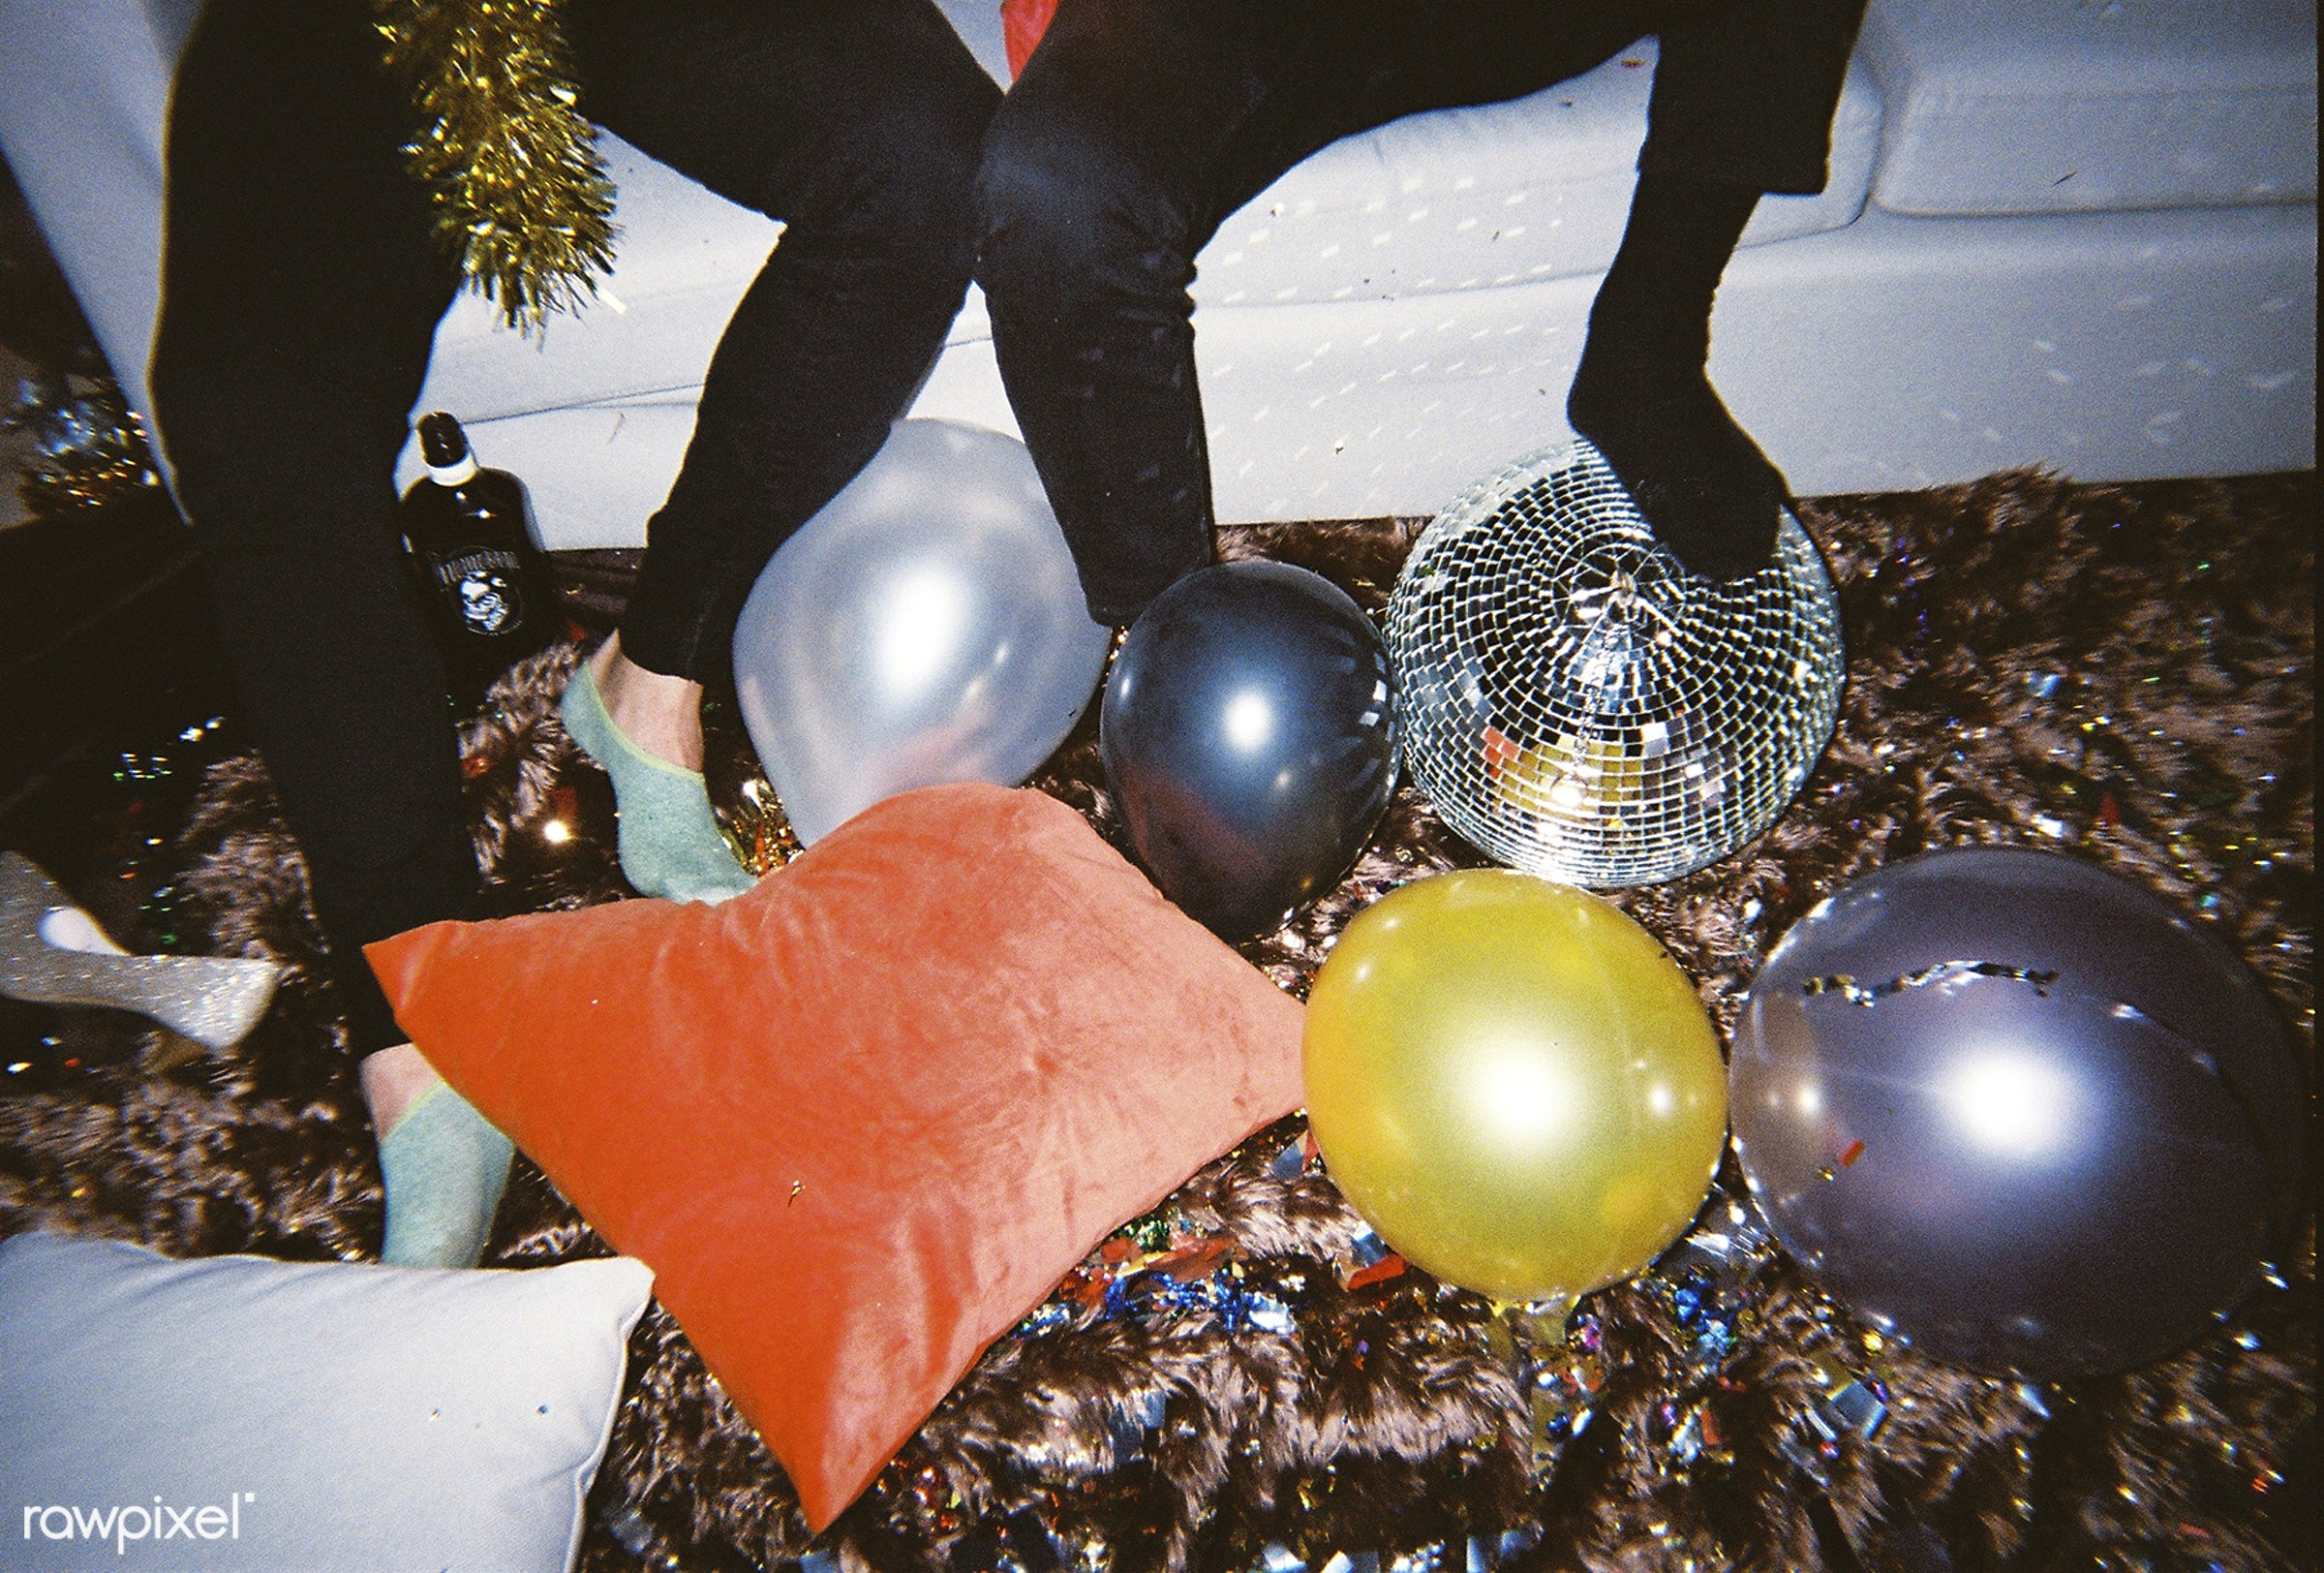 People enjoying a party with friends - party, new year, birthday, 2018, balloons, birthday party, celebrate, celebration,...